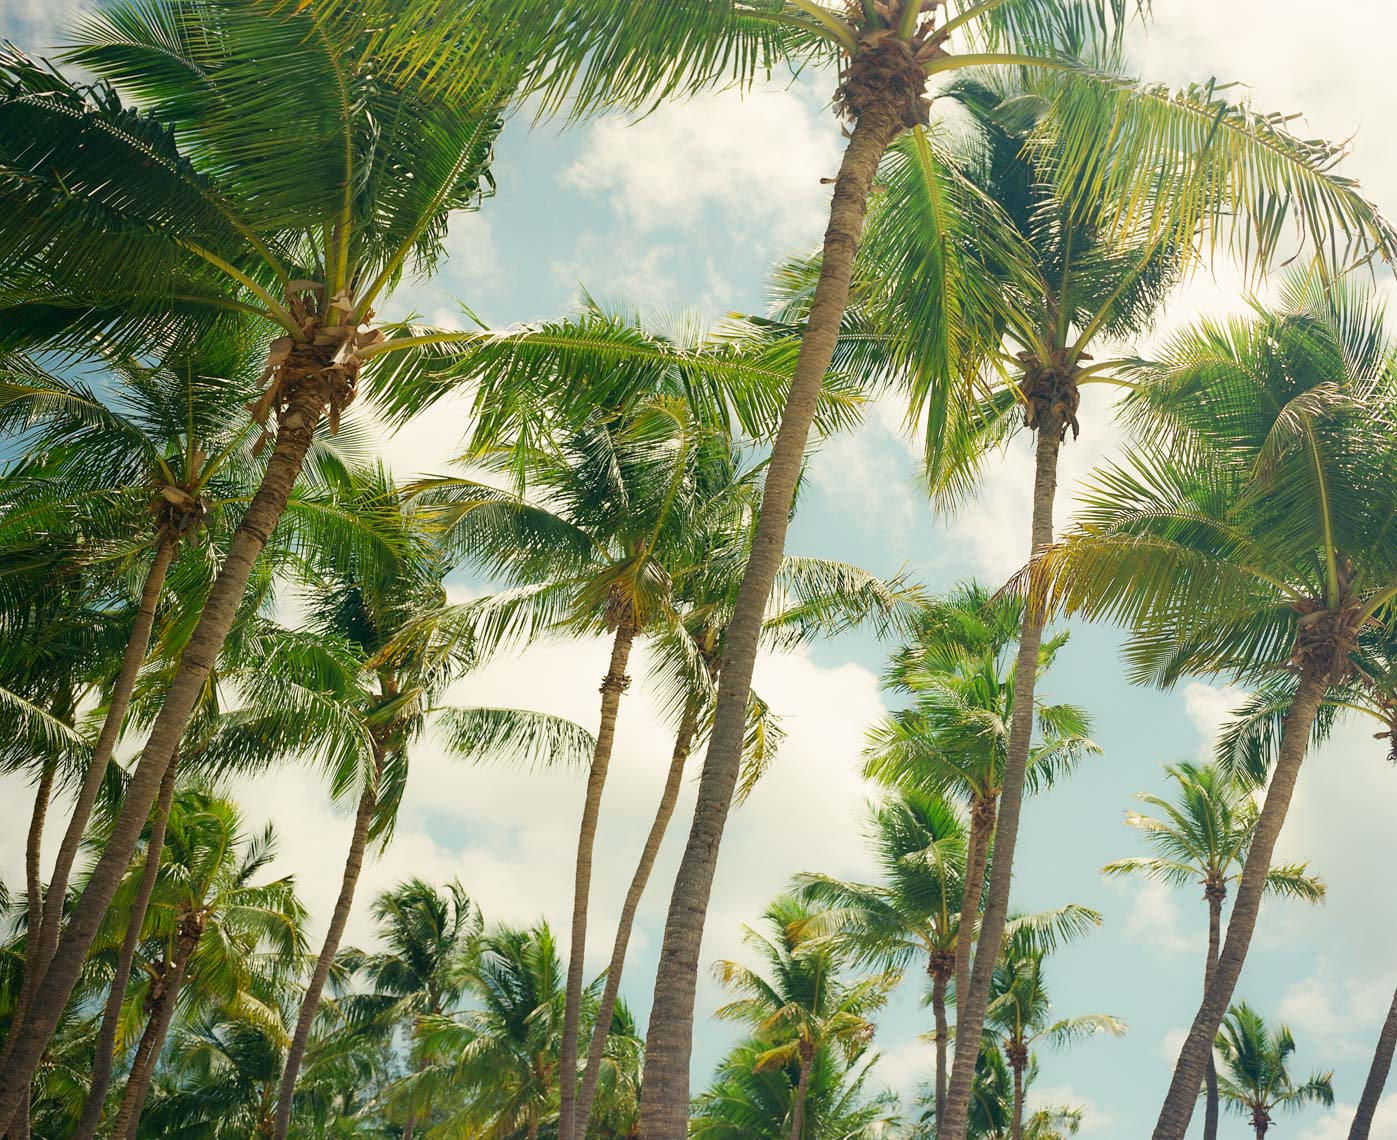 IMAGE OF PALM TREES | TOSCA RADIGONDA PHOTOGRAPHY